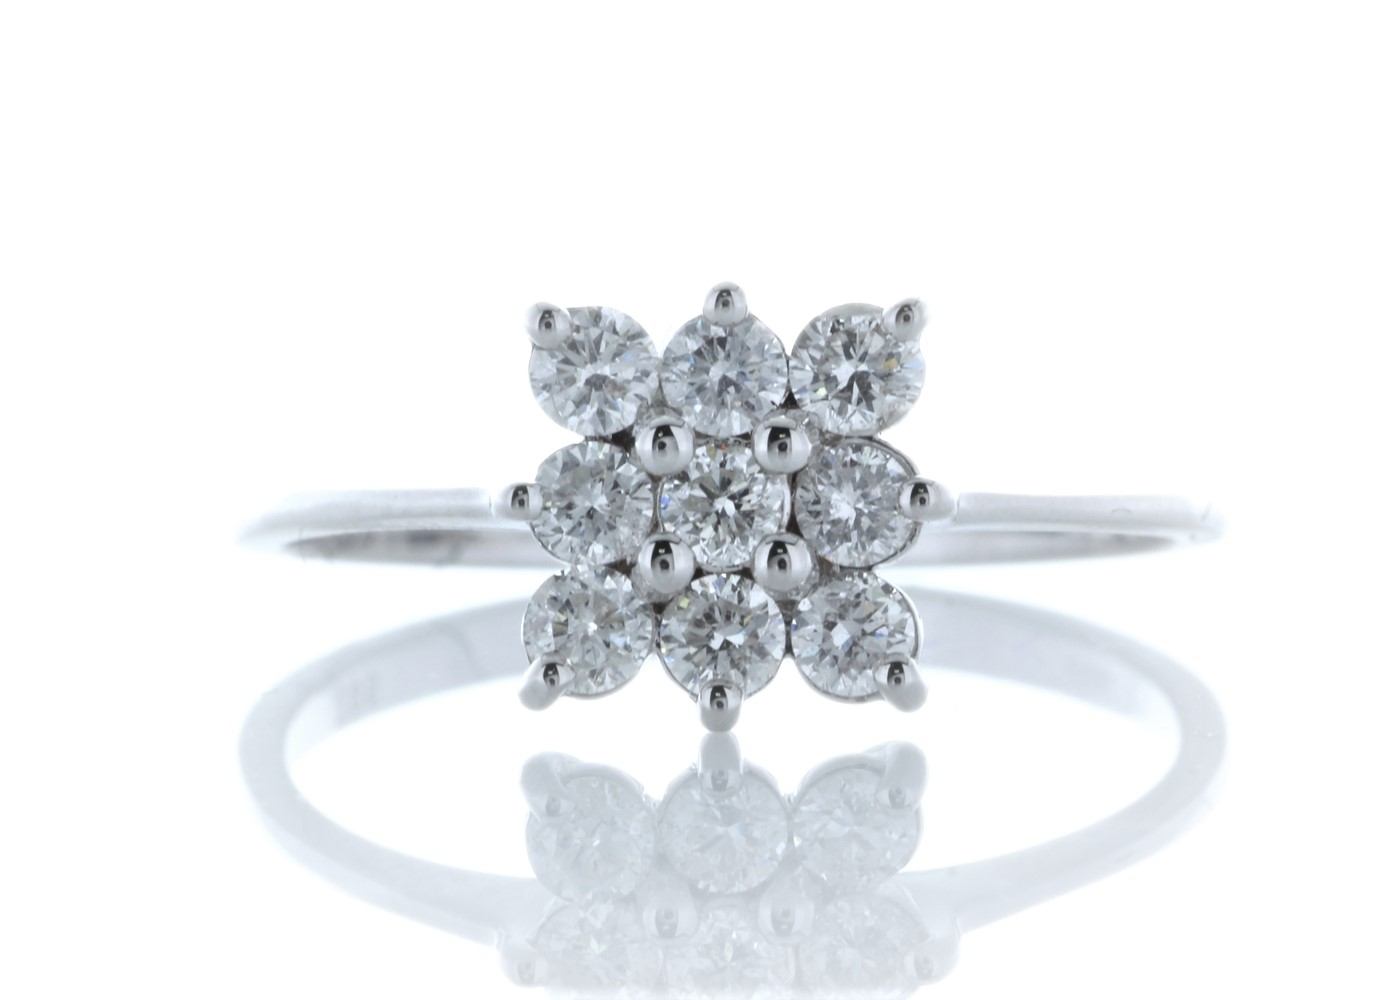 18ct White Gold Fancy Cluster Diamond Ring 0.45 Carats